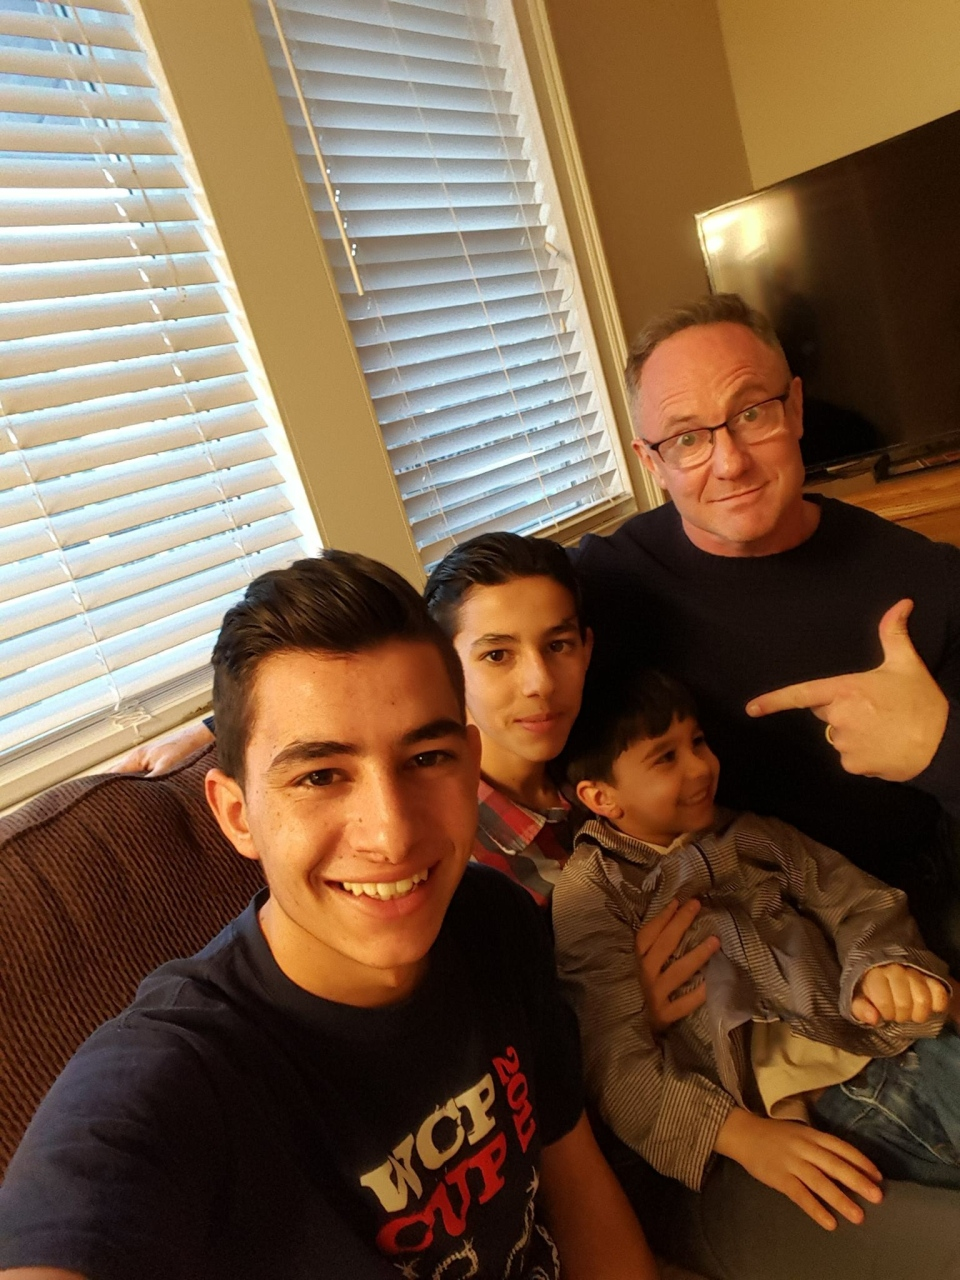 Kevin Newman with the Al Moulia boys.